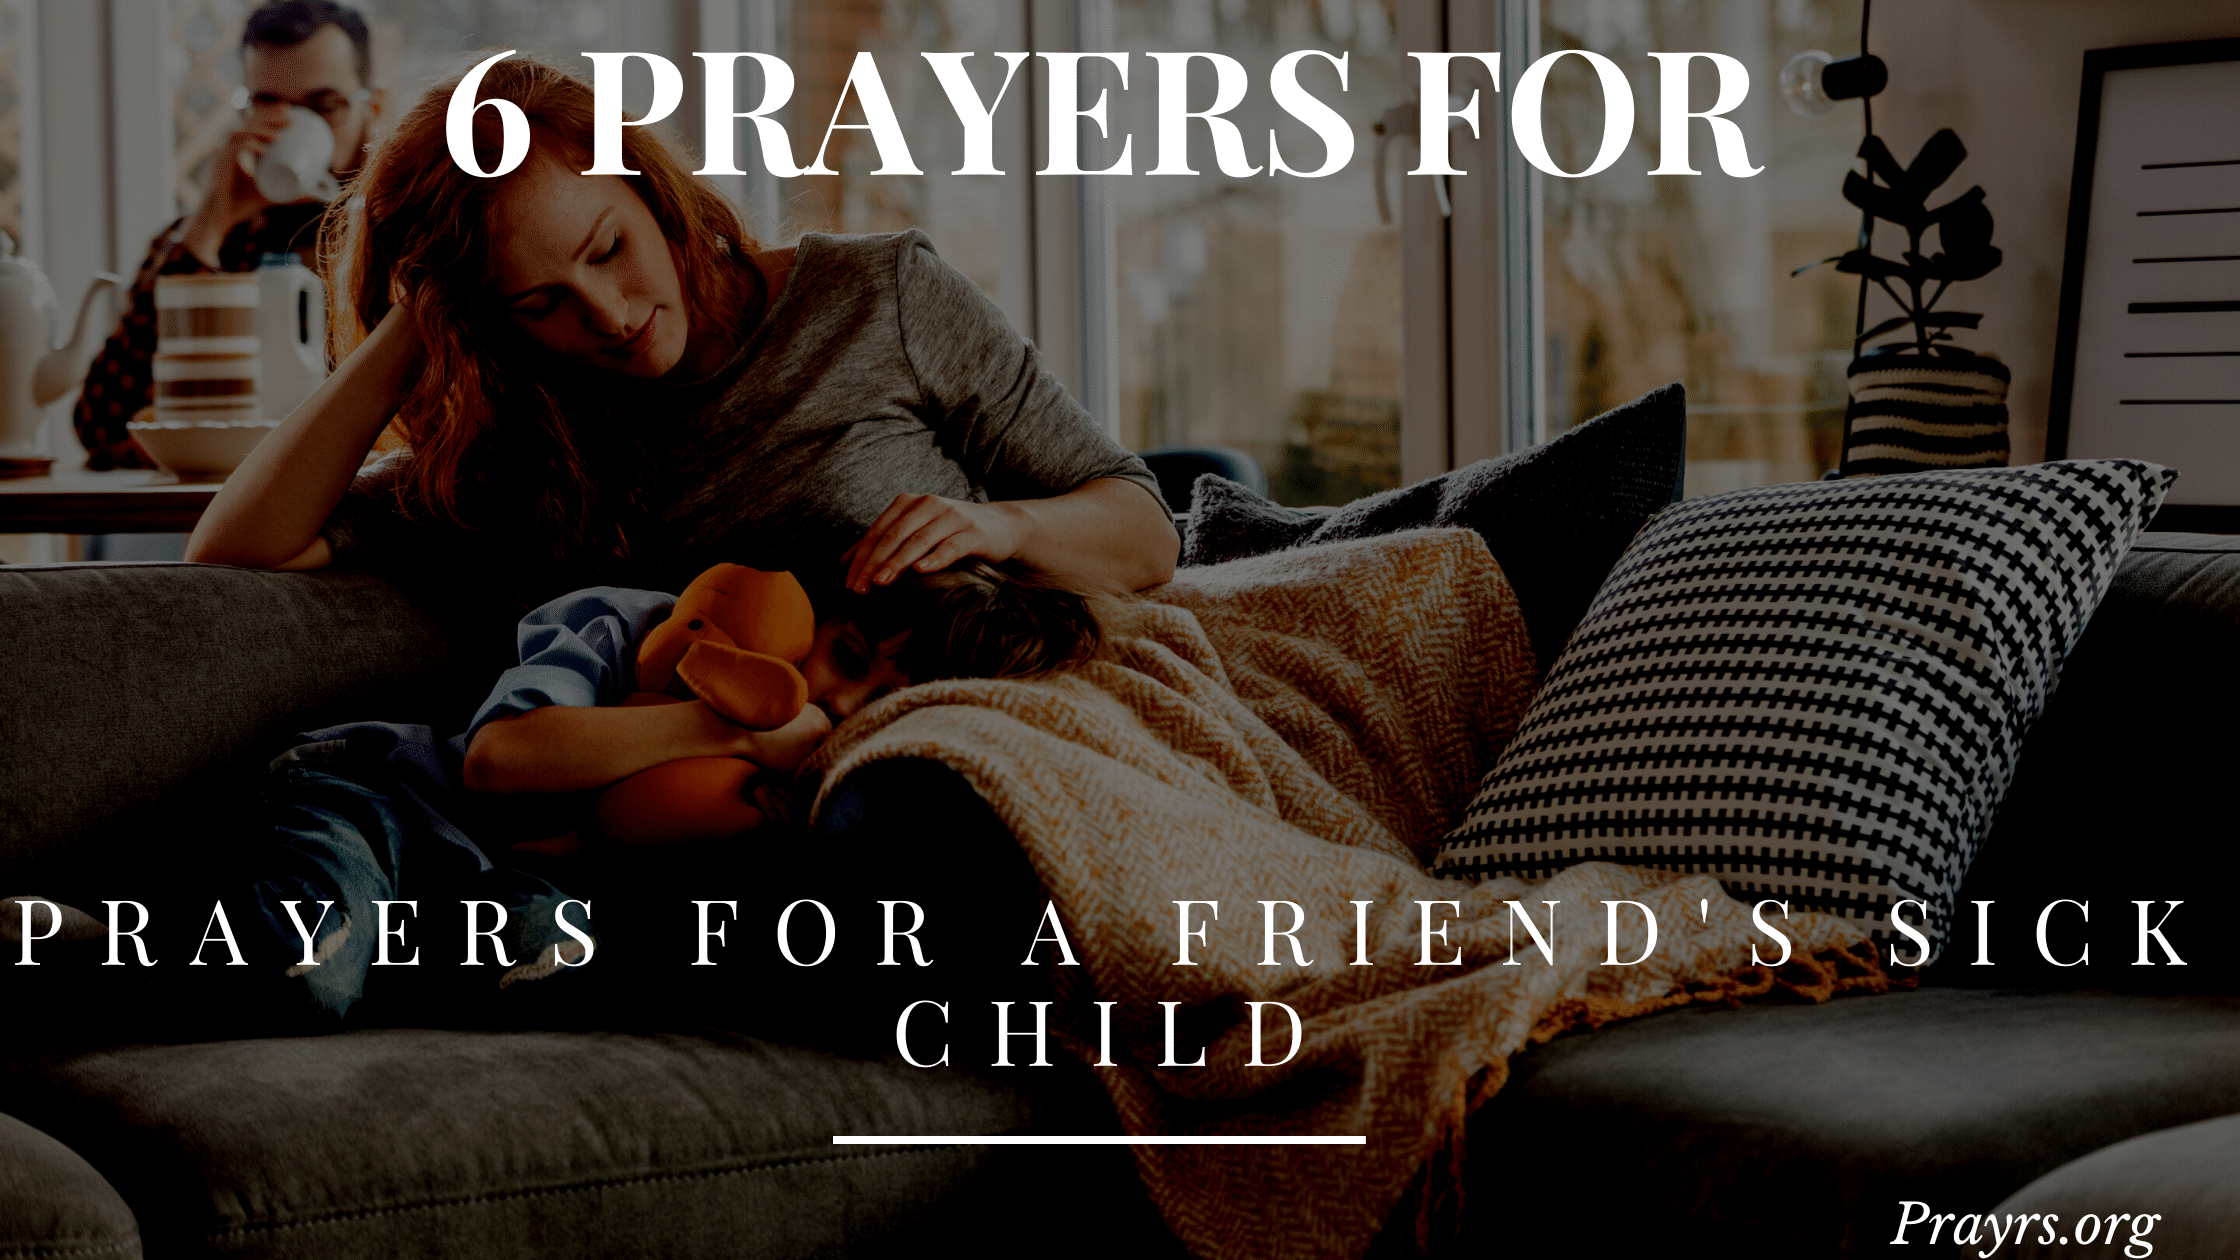 Prayers for a Friend's Sick Child